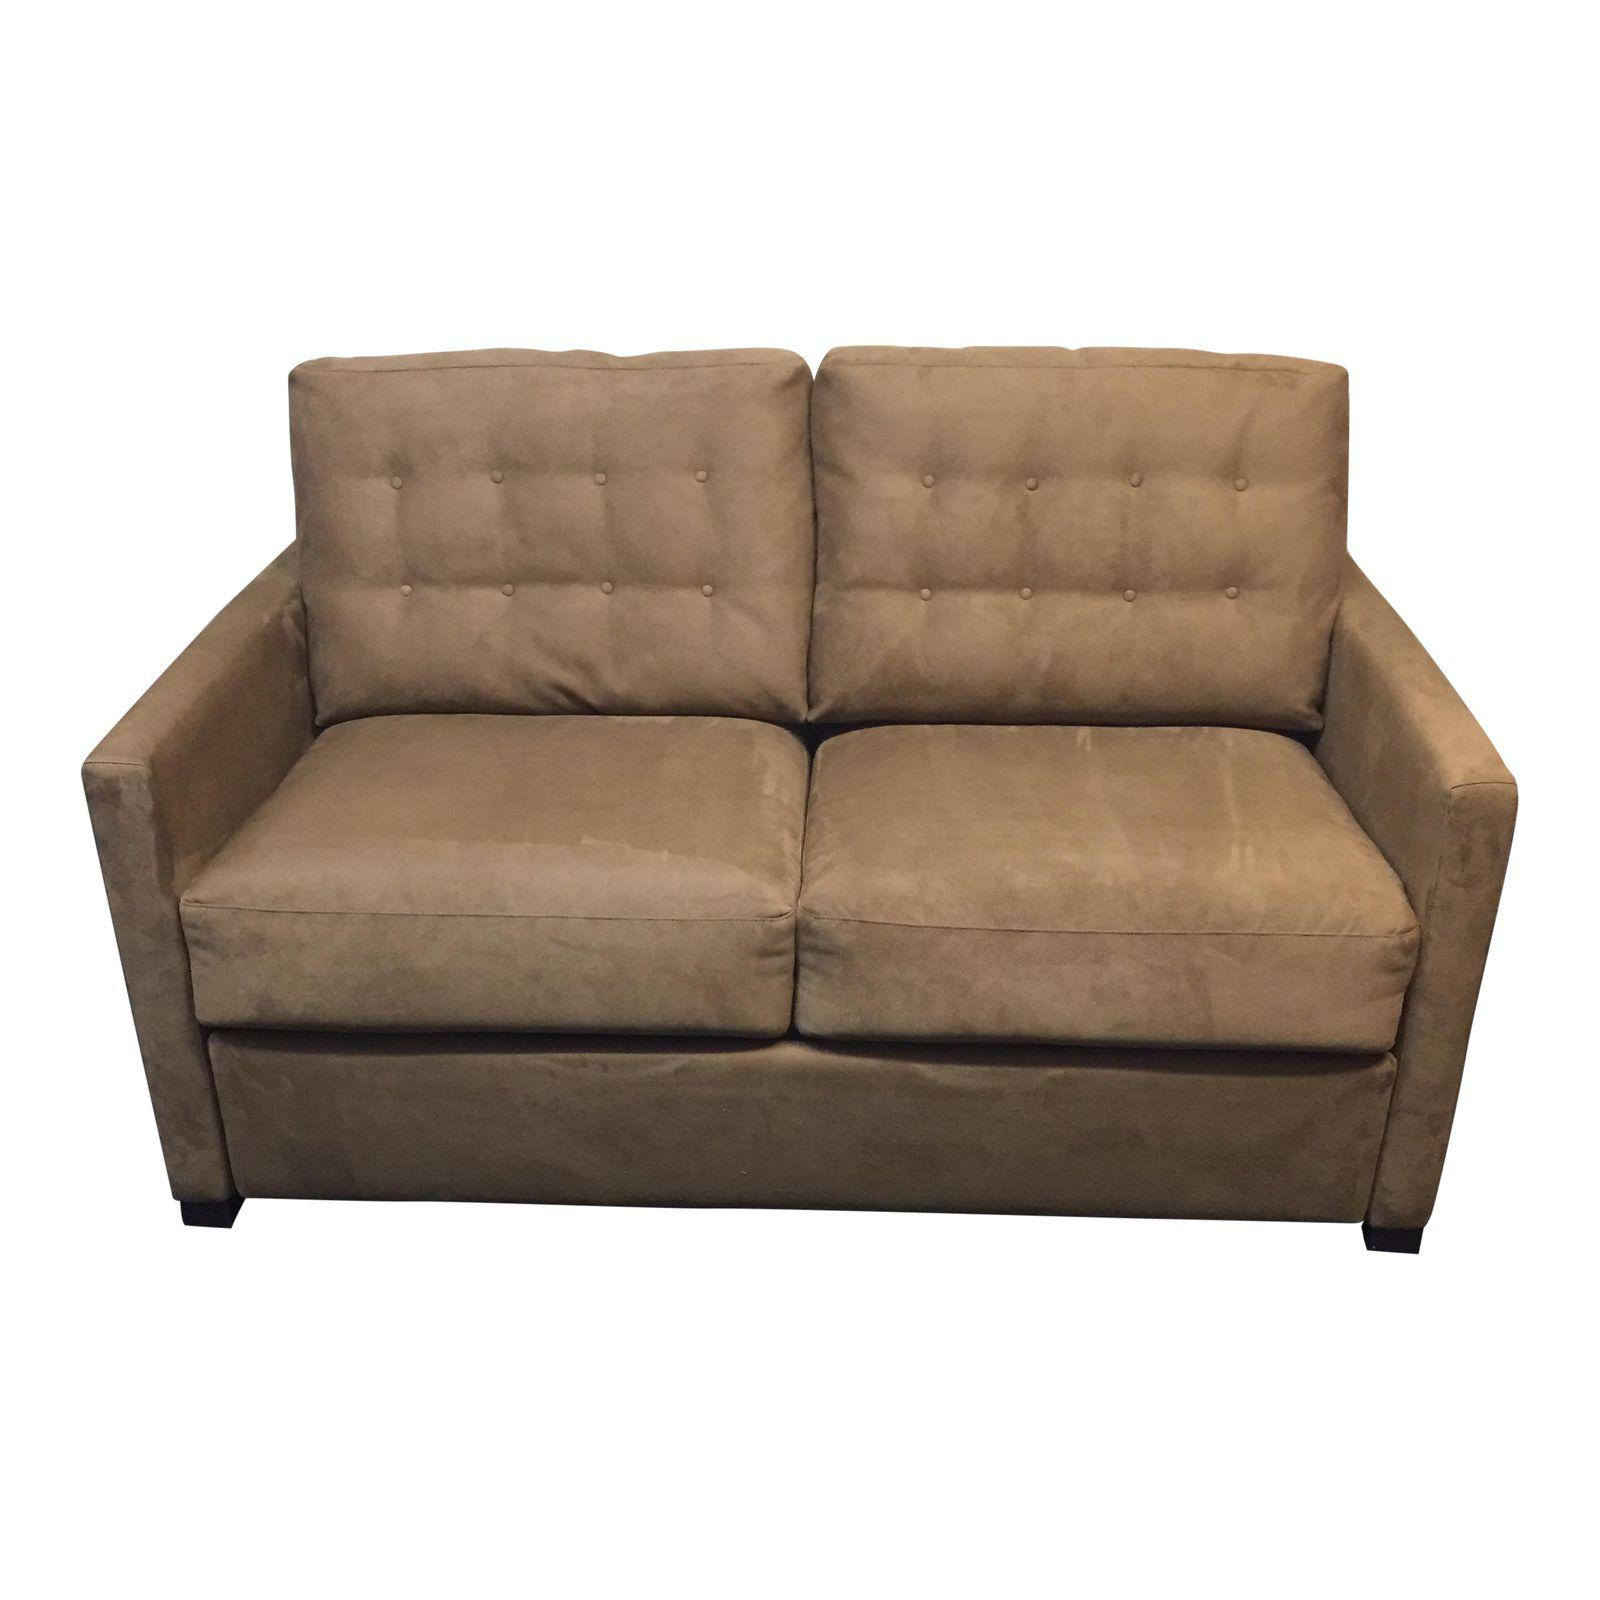 leather full size sleeper sofa comfortable for small living room american quotsue quot comfort